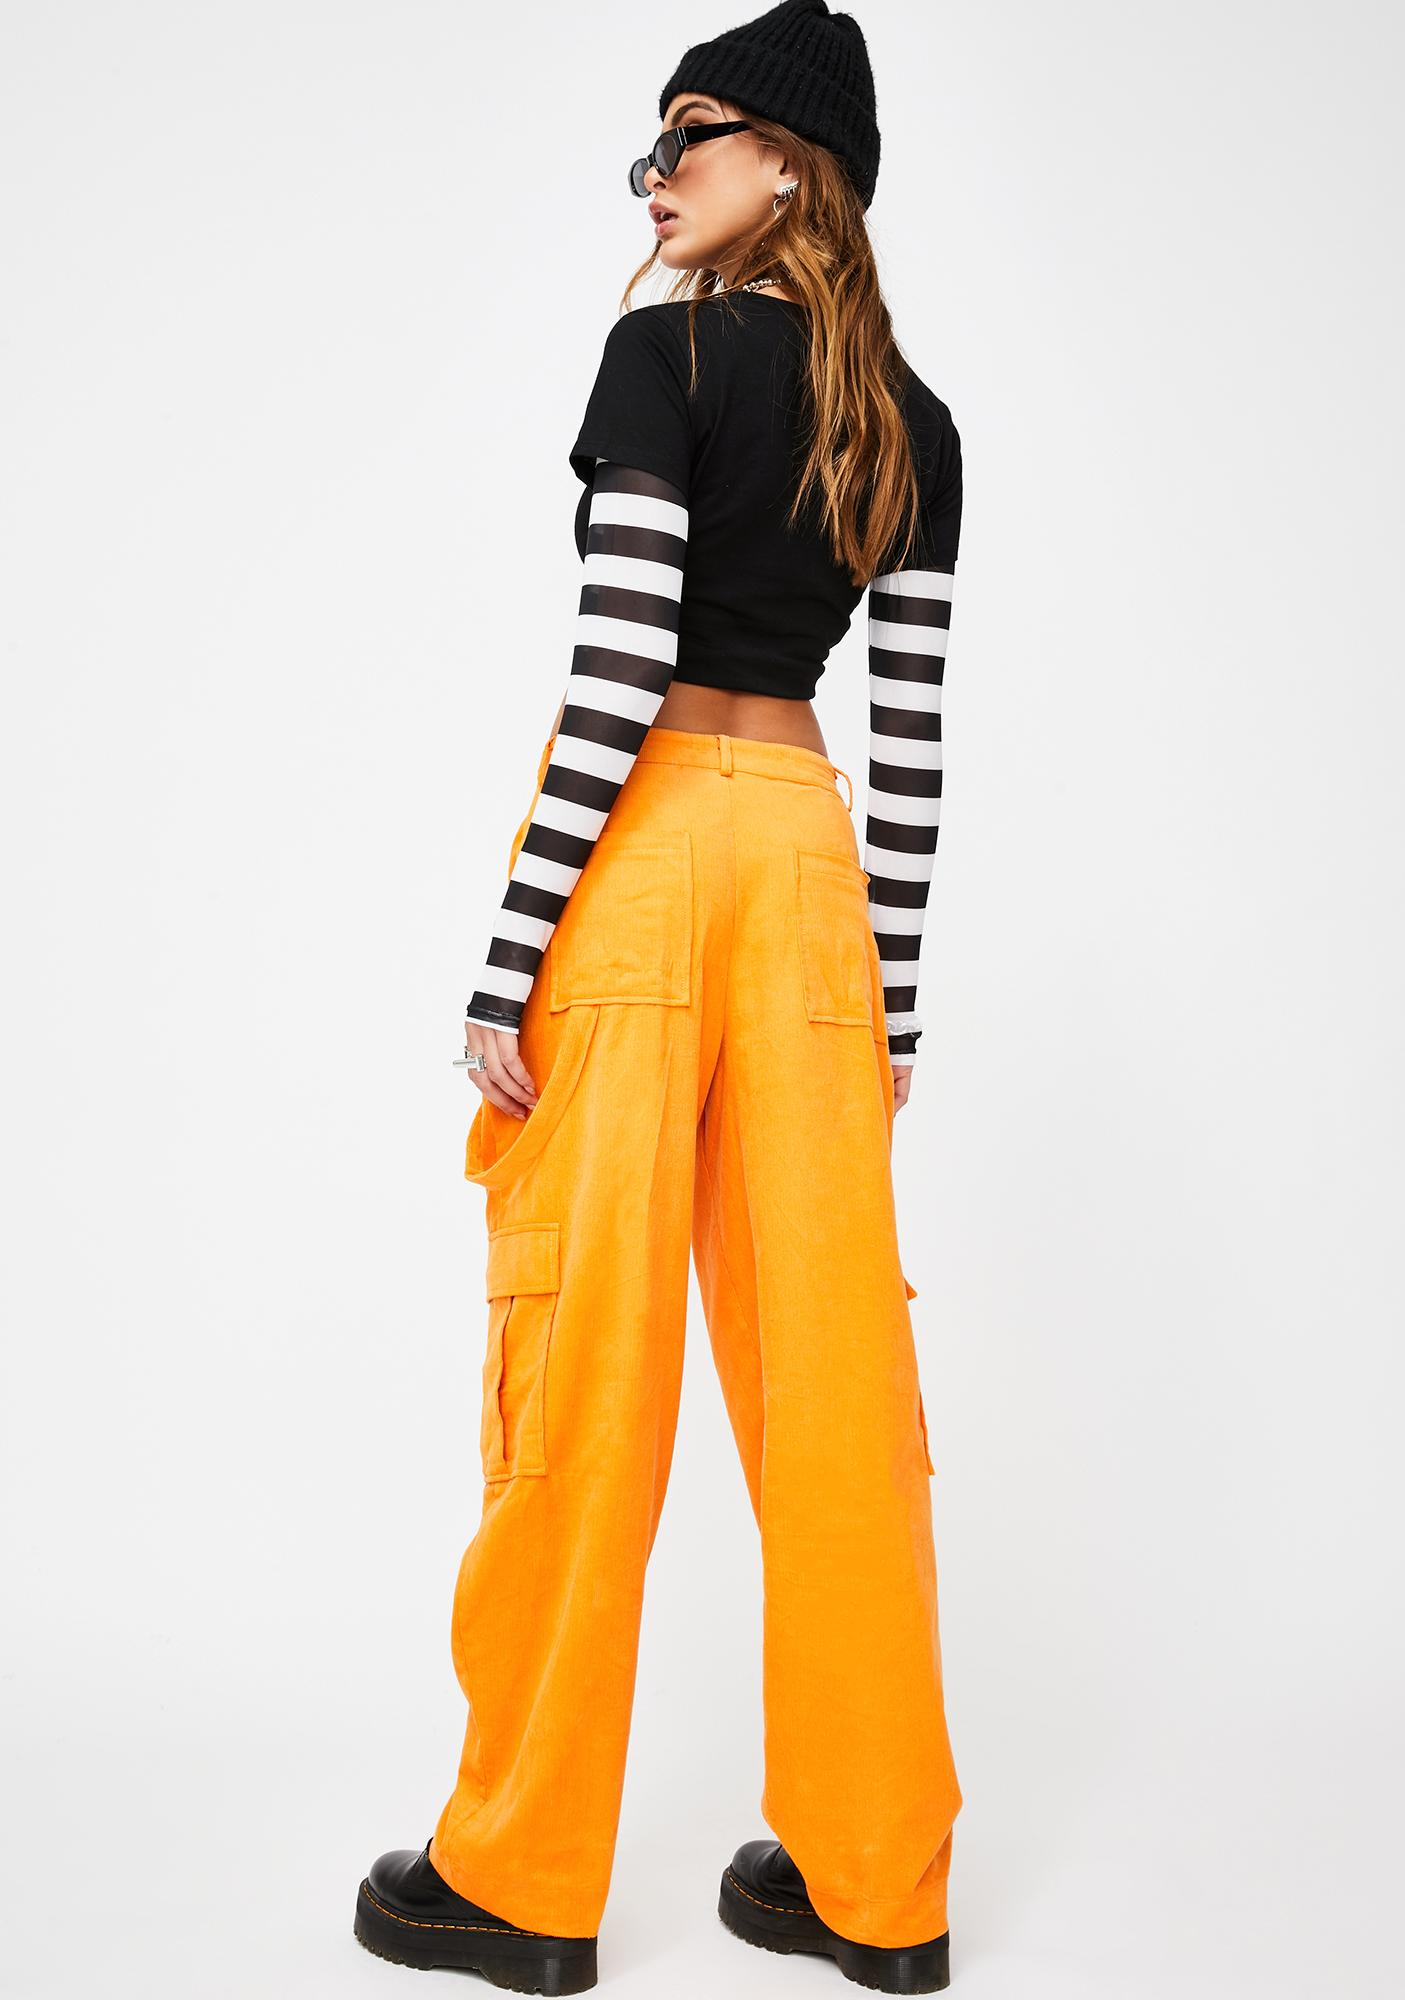 The Ragged Priest Flame Corduroy Pants